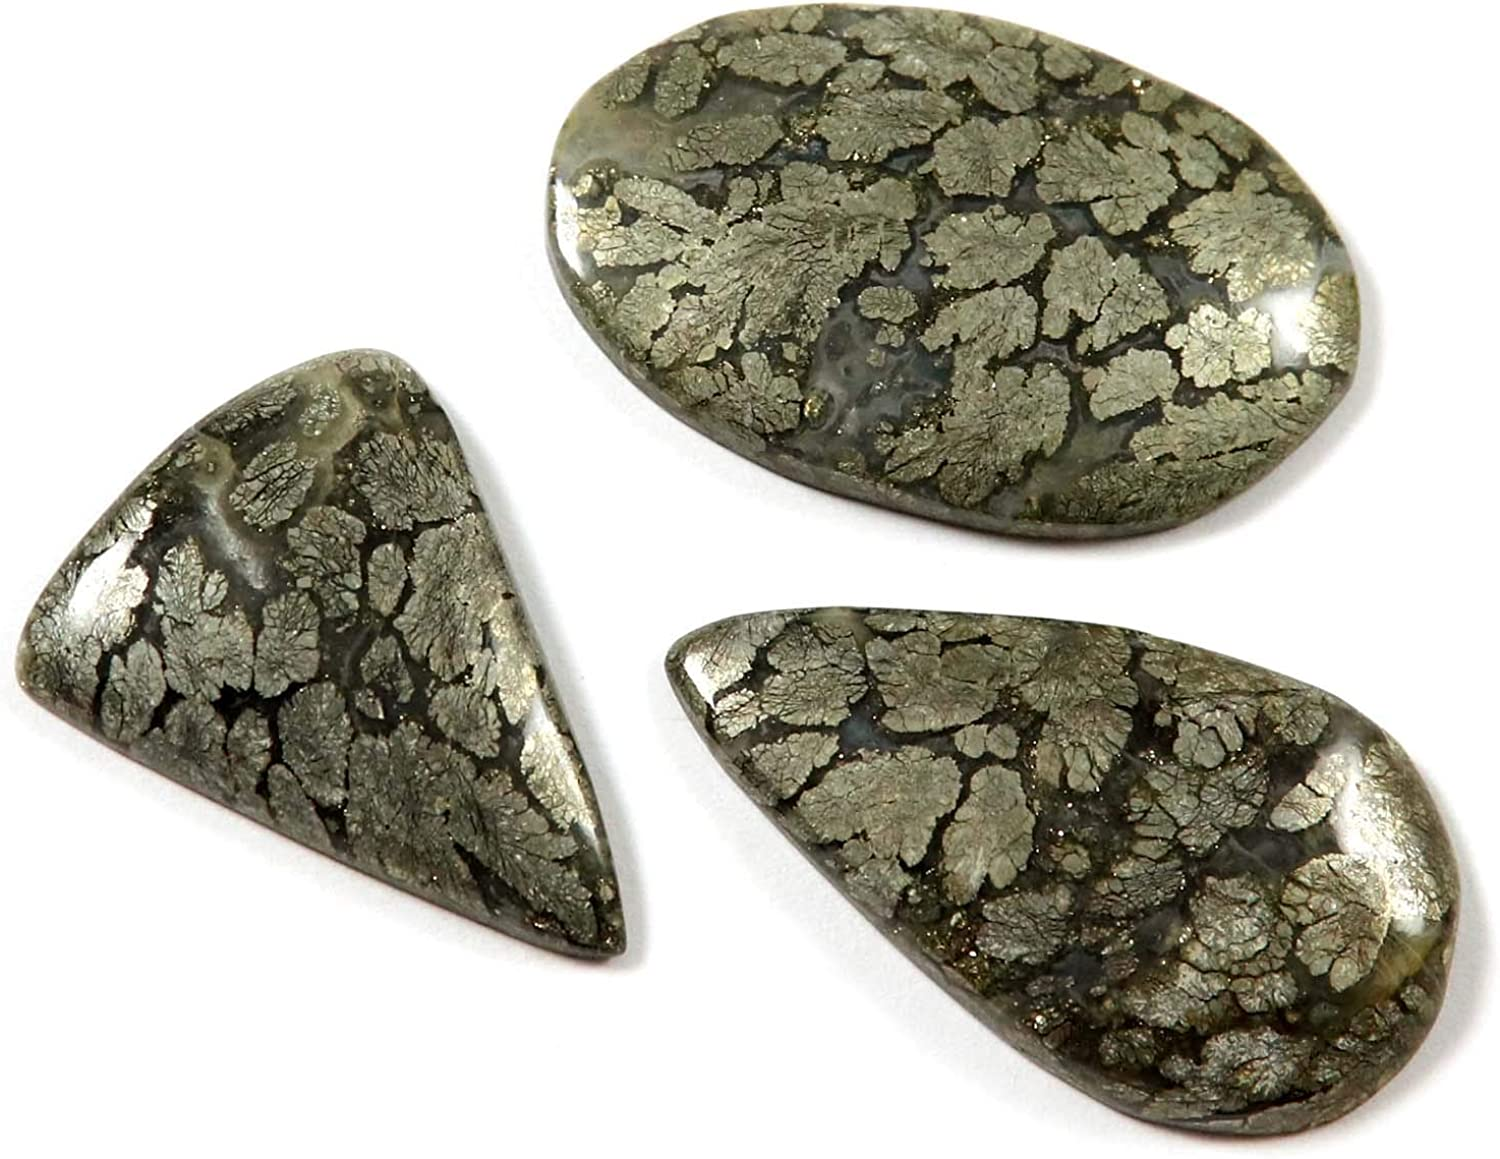 Marcasite Top Quality Natural Marcasite Cabochon Loose Gemstone Designer Marcasite Cabochon For Multi Jewelry Making Gemstone{40x23}mm #2685